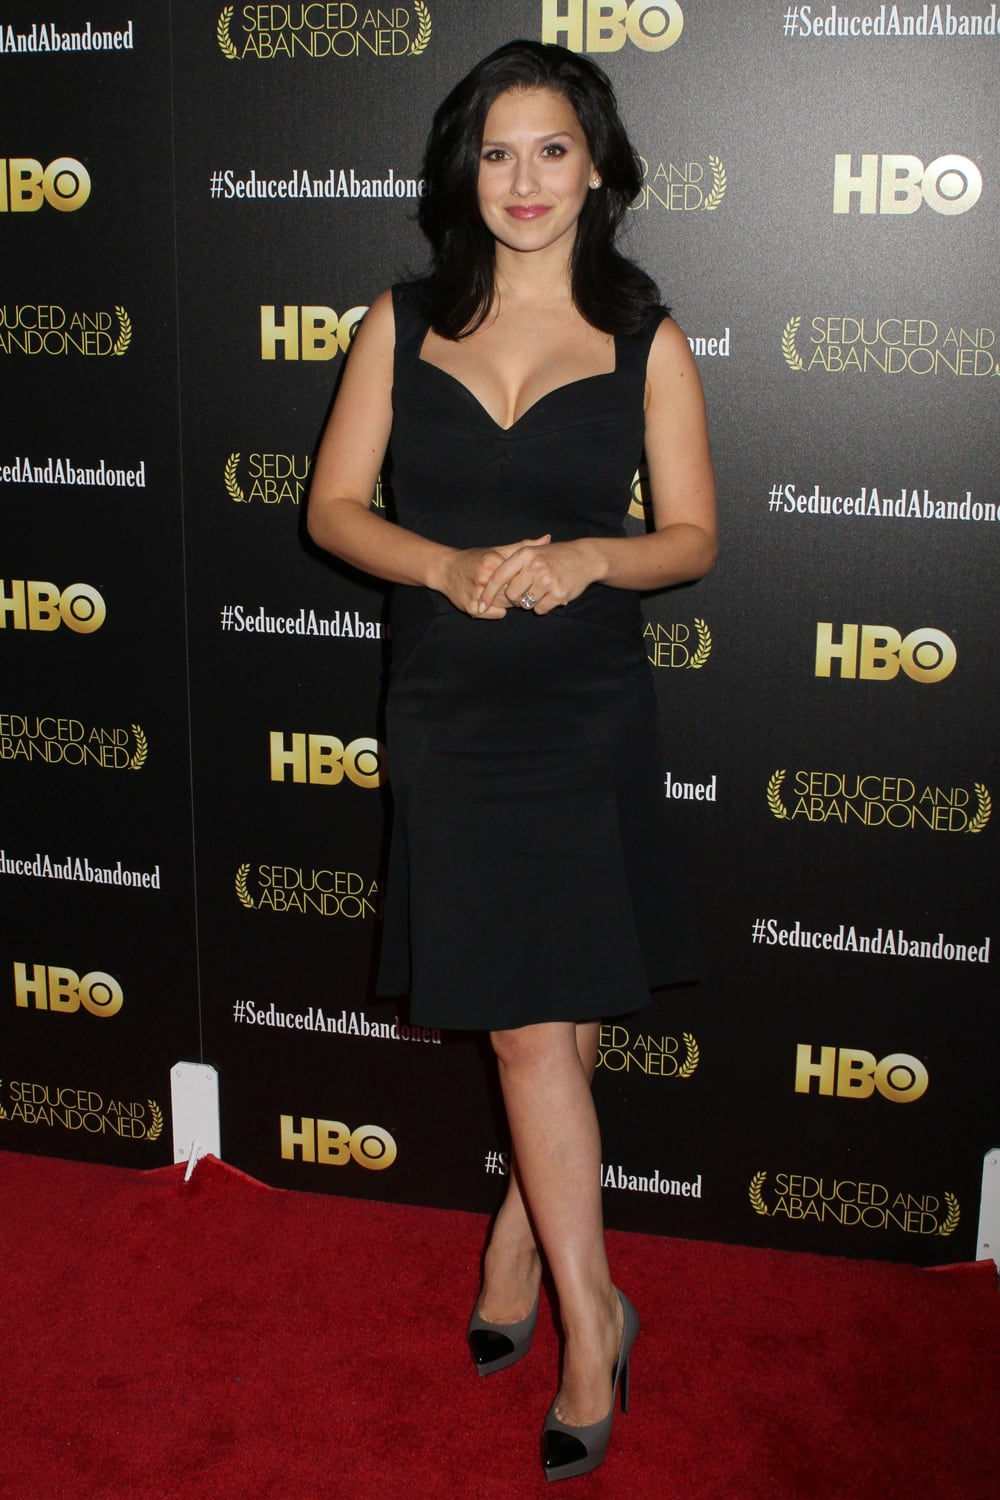 Hilaria Baldwin attends the HBO premiere of